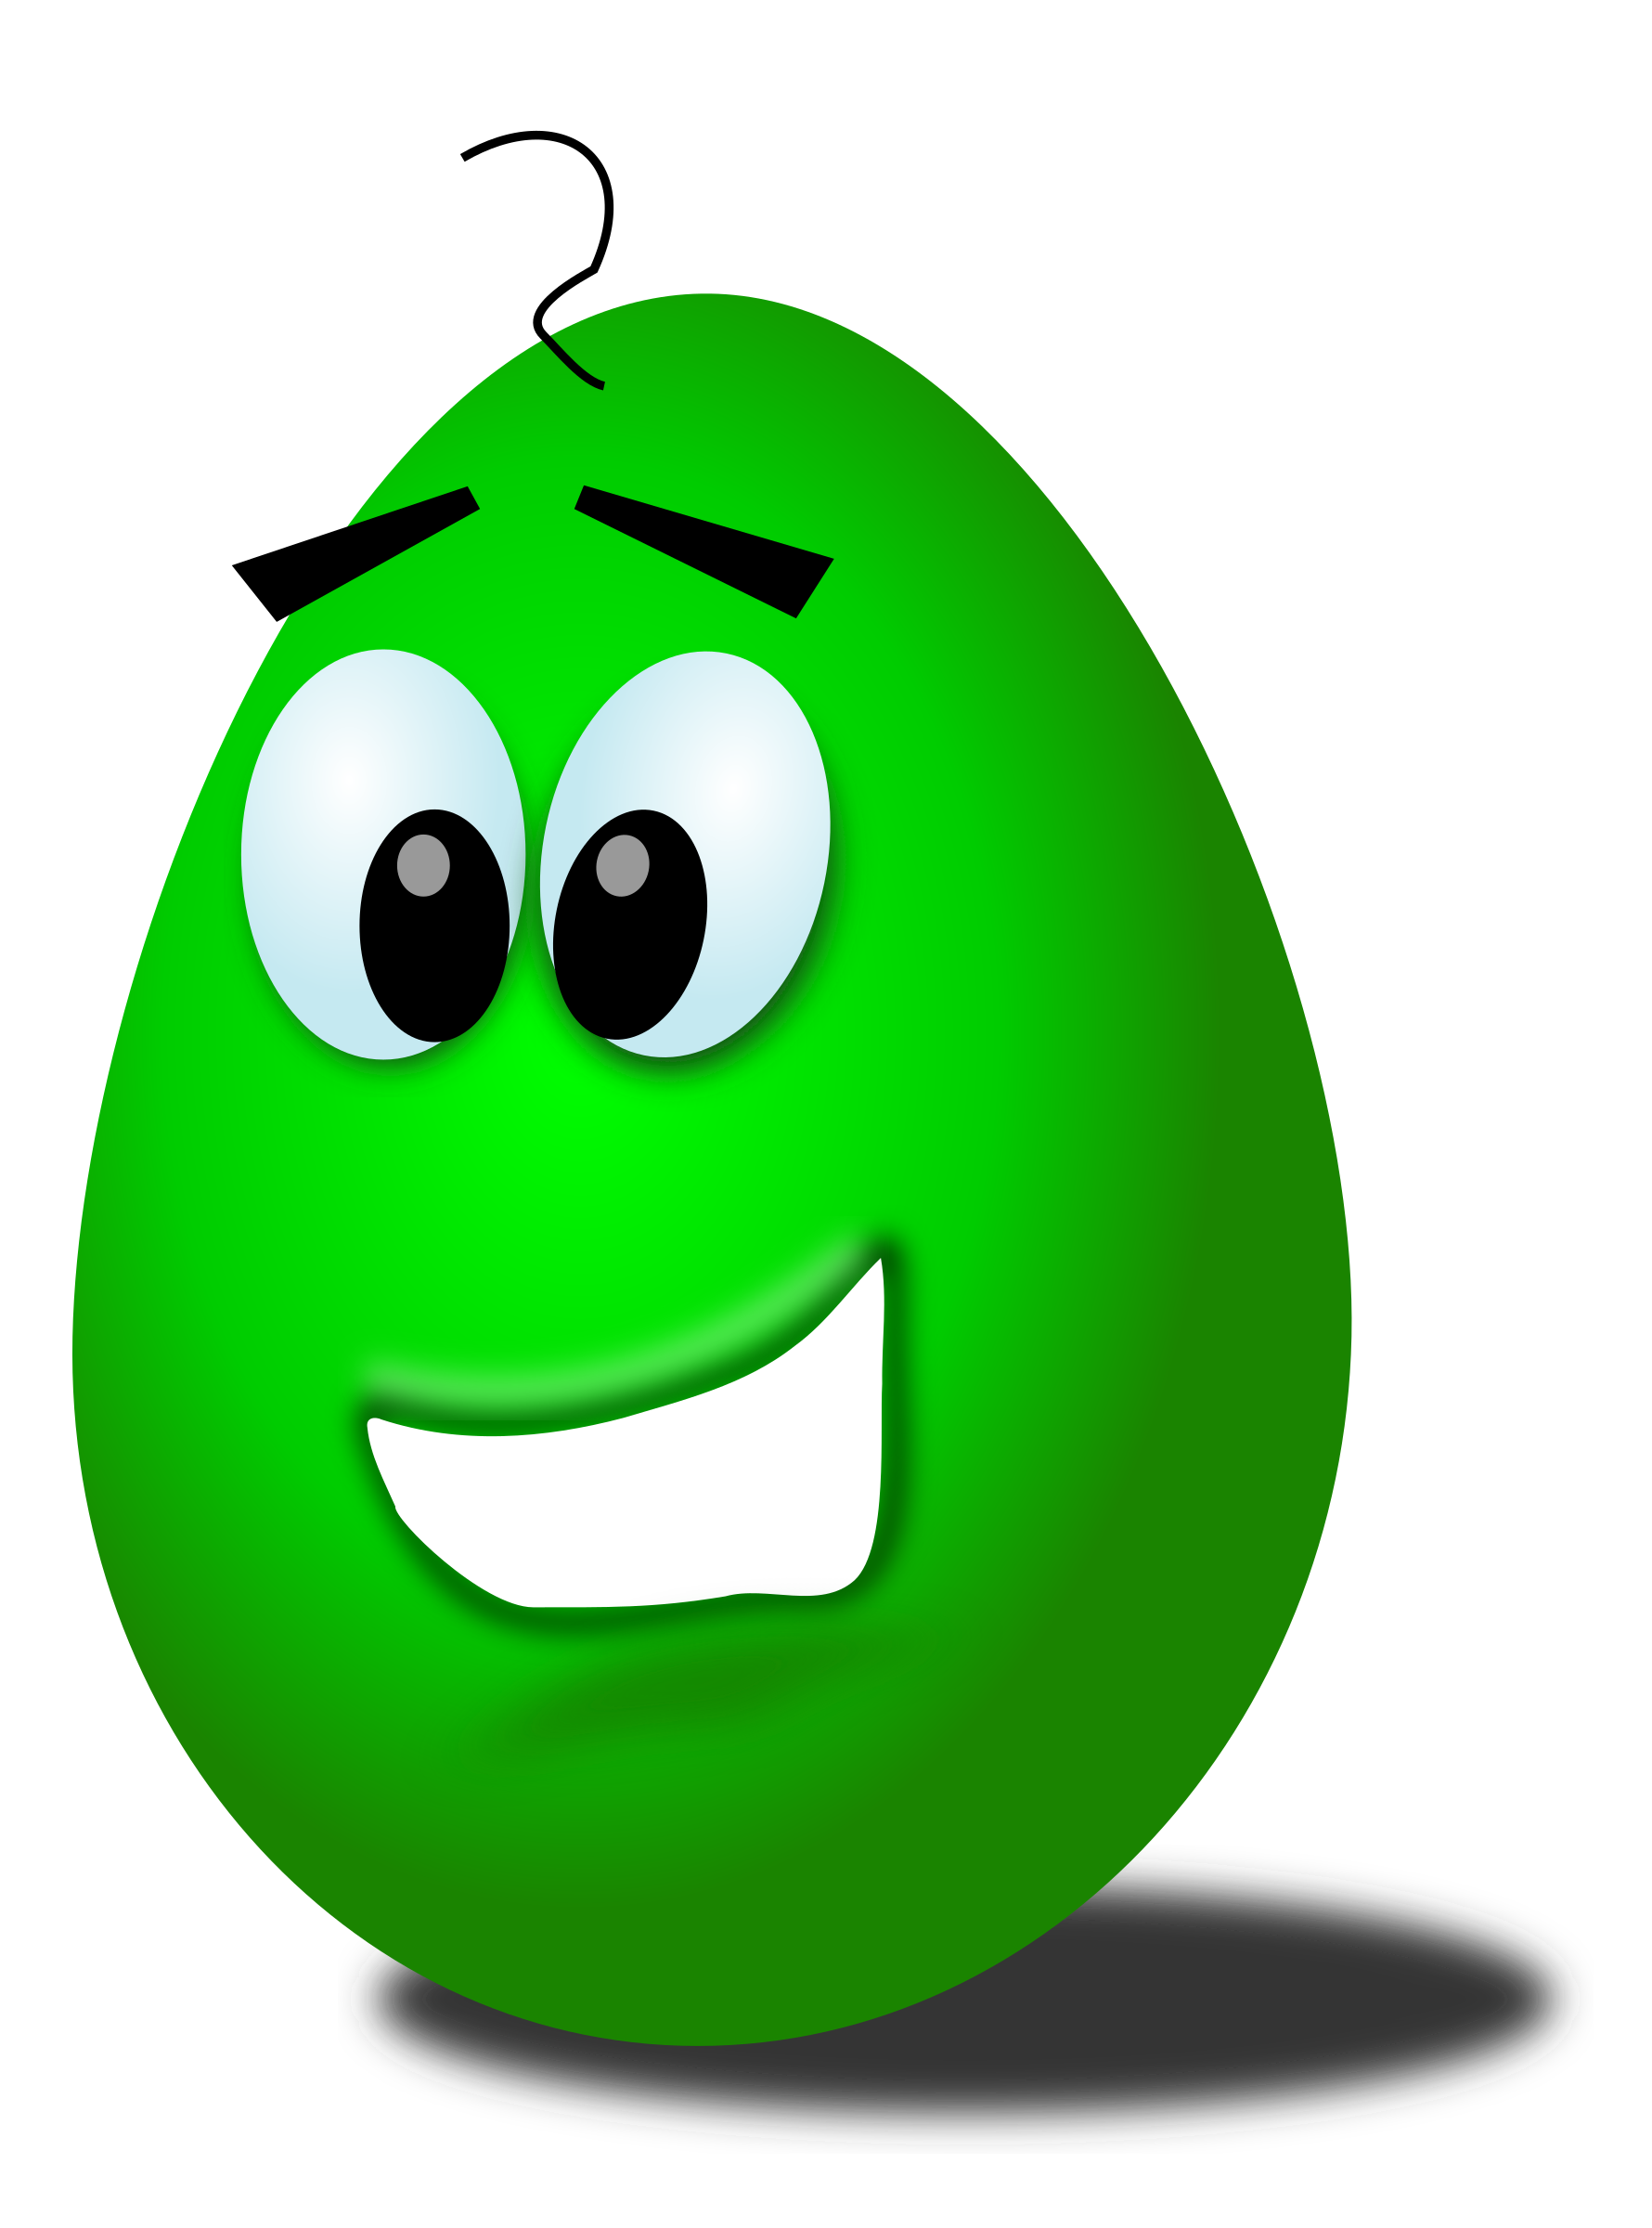 green comic egg by Chrisdesign